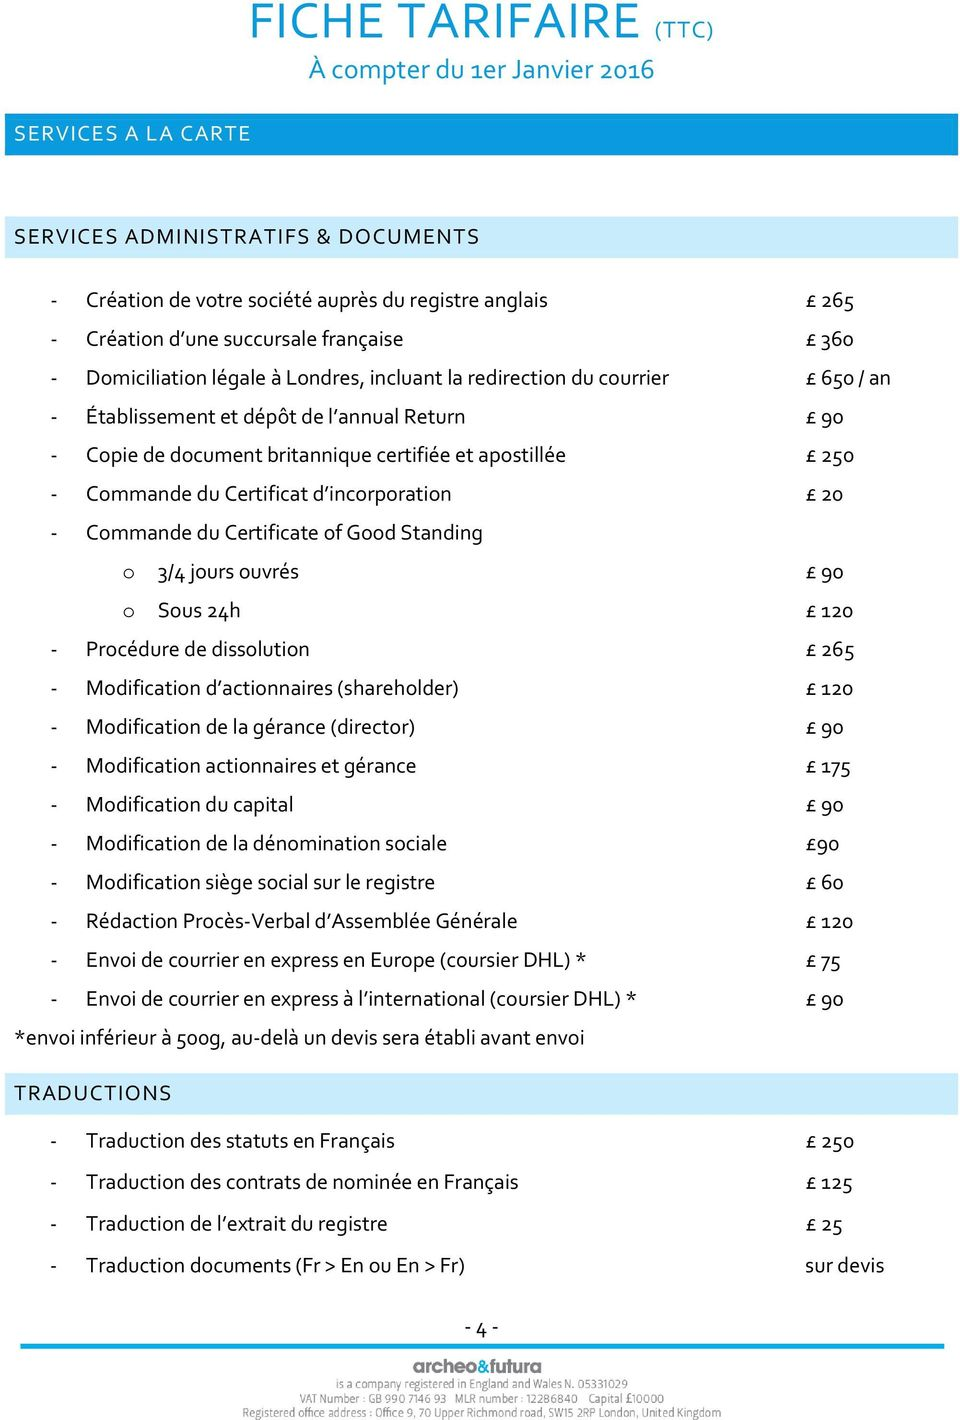 incorporation 20 - Commande du Certificate of Good Standing o 3/4 jours ouvrés 90 o Sous 24h 120 - Procédure de dissolution 265 - Modification d actionnaires (shareholder) 120 - Modification de la